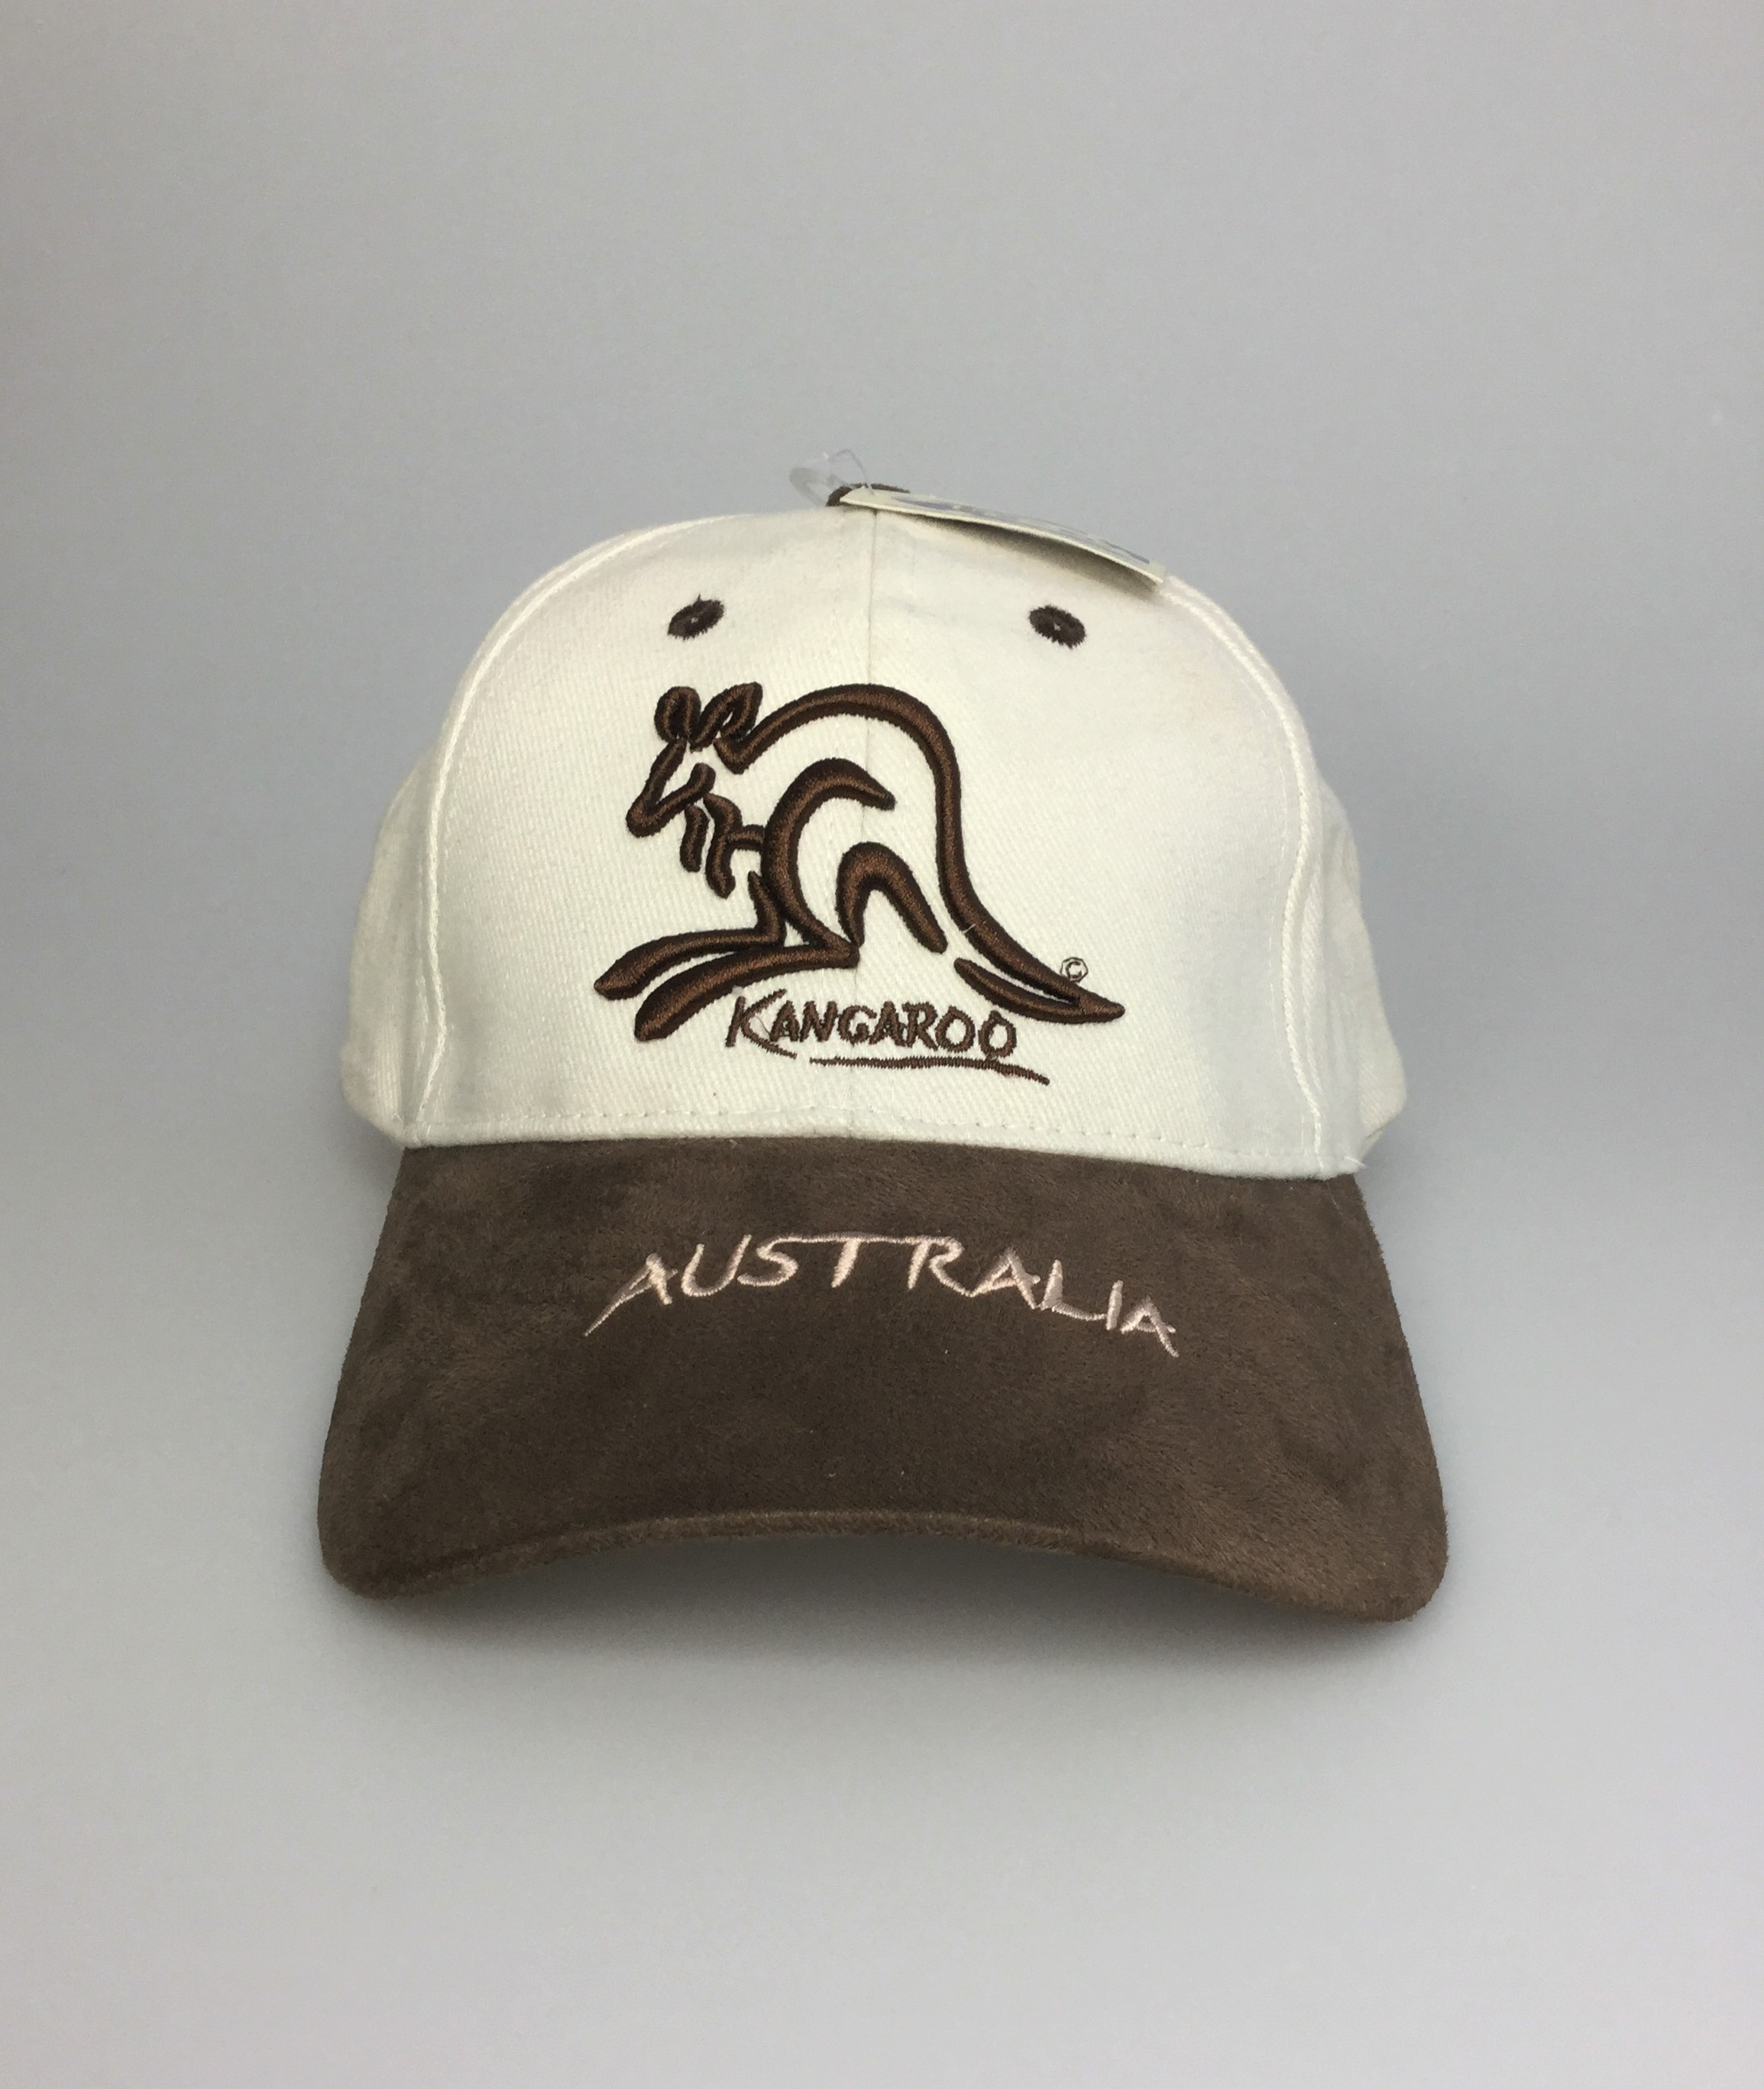 27ca1de9c28 Three dimensional embroidery is a type of decoration that we perform on our  range of caps. This type of embroidery creates a beautiful custom branding  ...